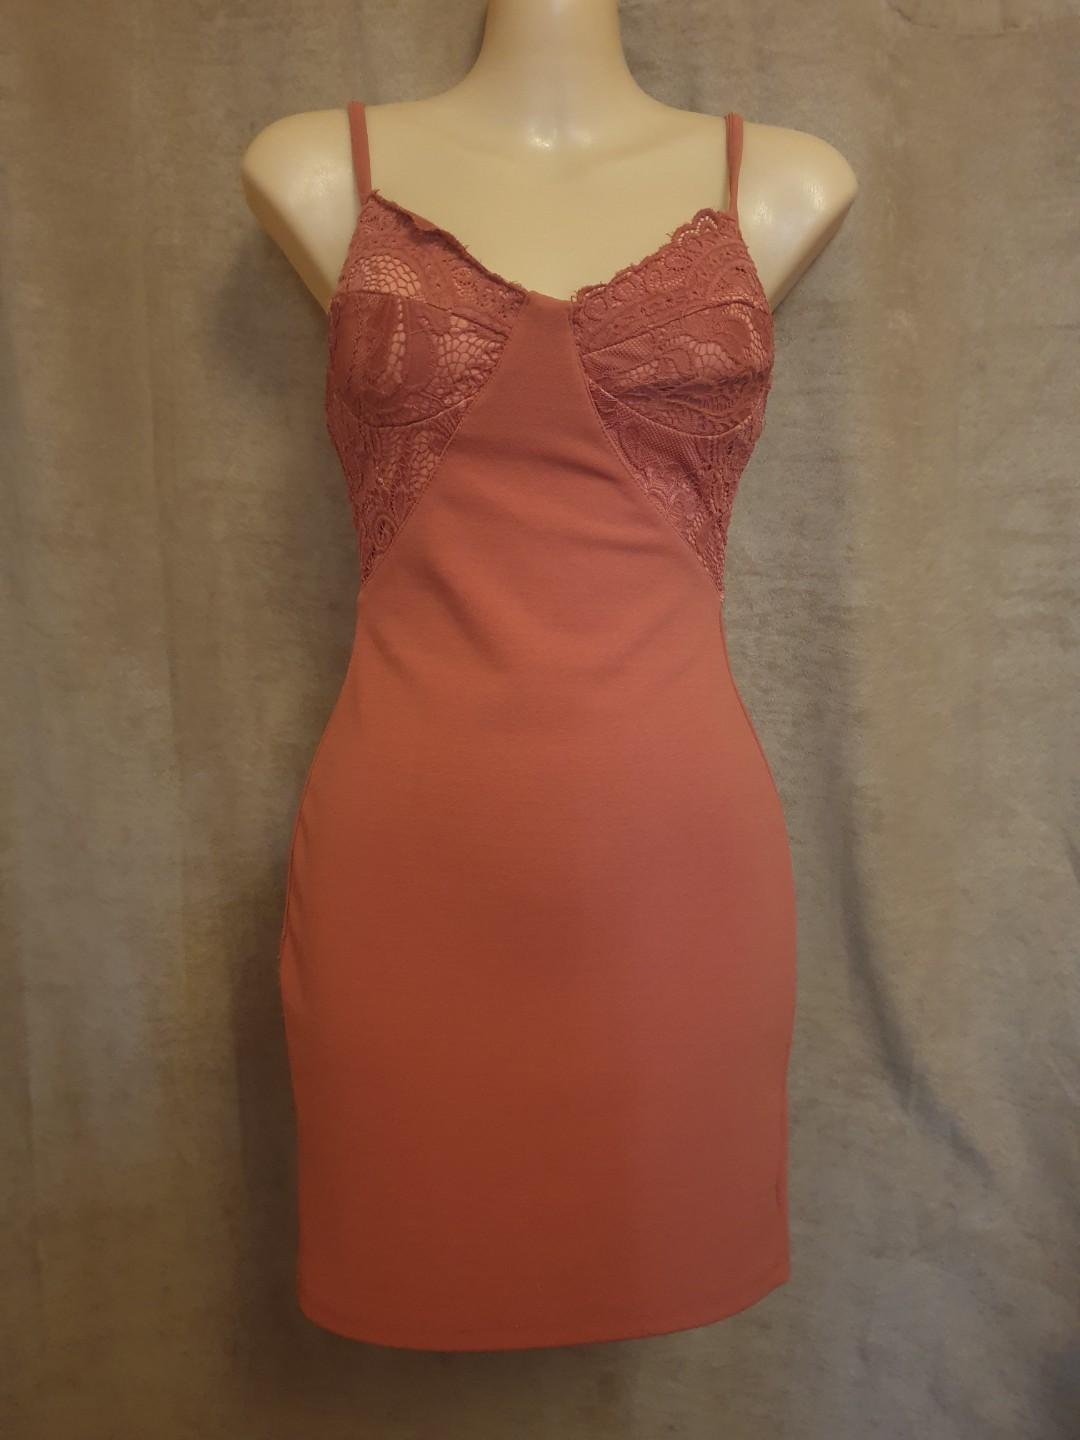 Morning Mist Rust Lace Bodycon Dress Size 6 Good Preloved Condition